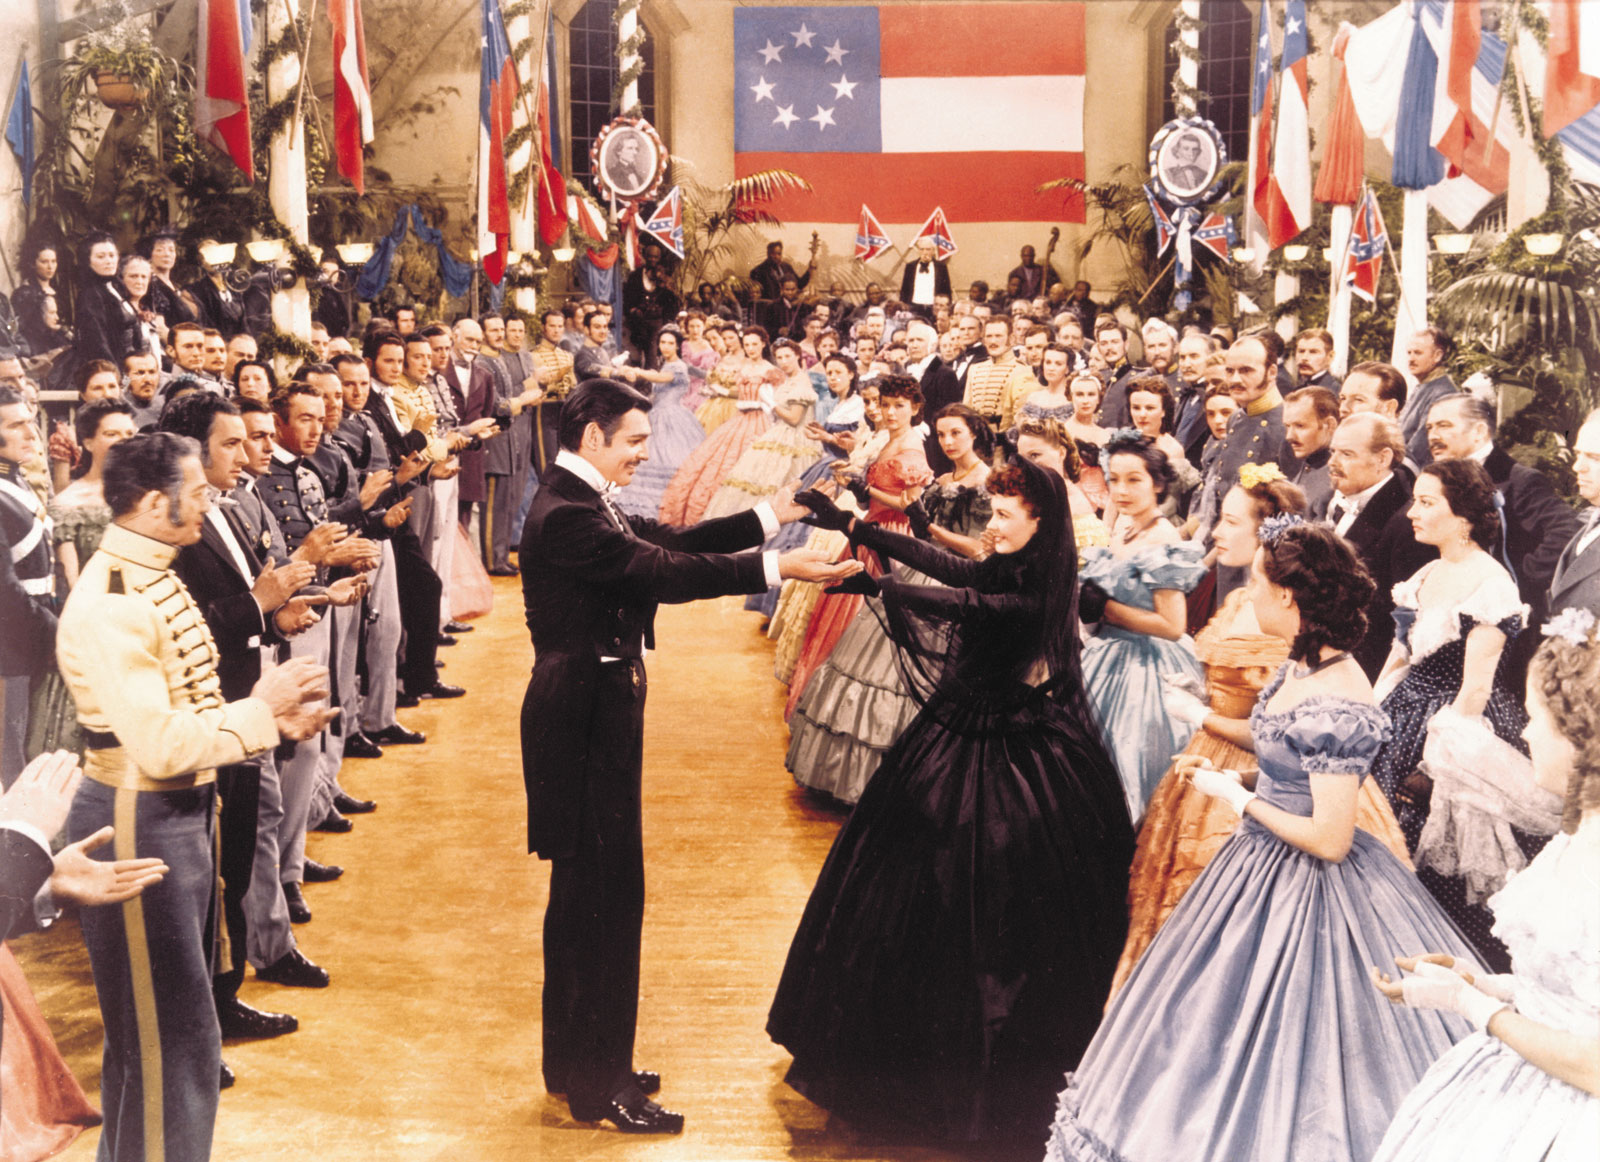 an analysis of gone with the wind and glory two movies set during the american civil war A teacher's guide to civil war movies gone with the wind (1939): the classic american it depicts a man who is to be hanged for sabotage during the civil war.